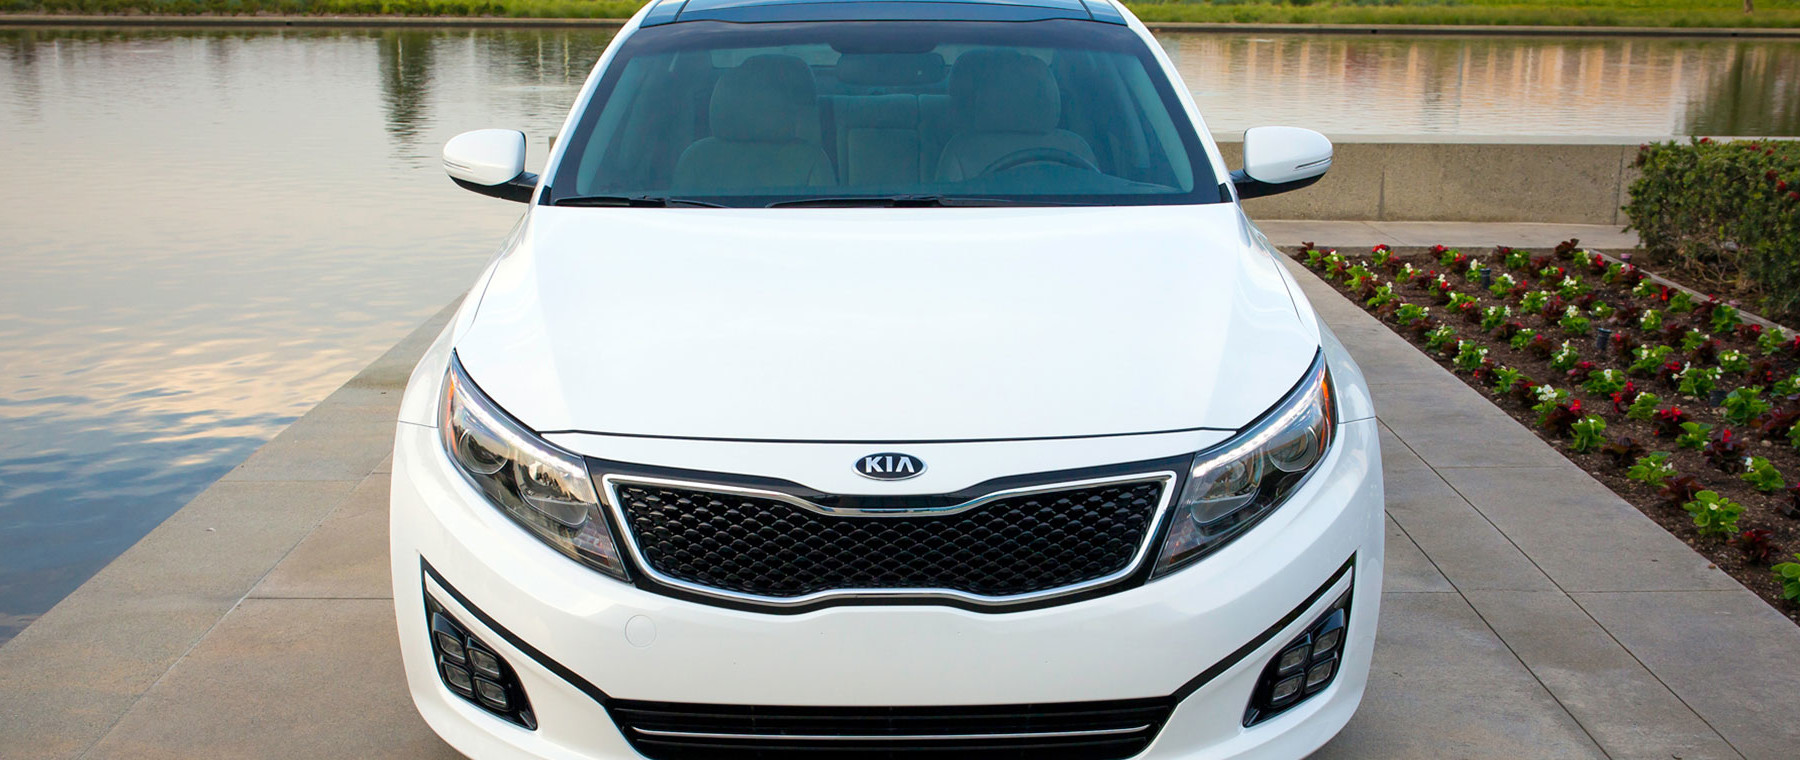 New 2016 Kia Optima parking |Quirk Kia in Manchester NH